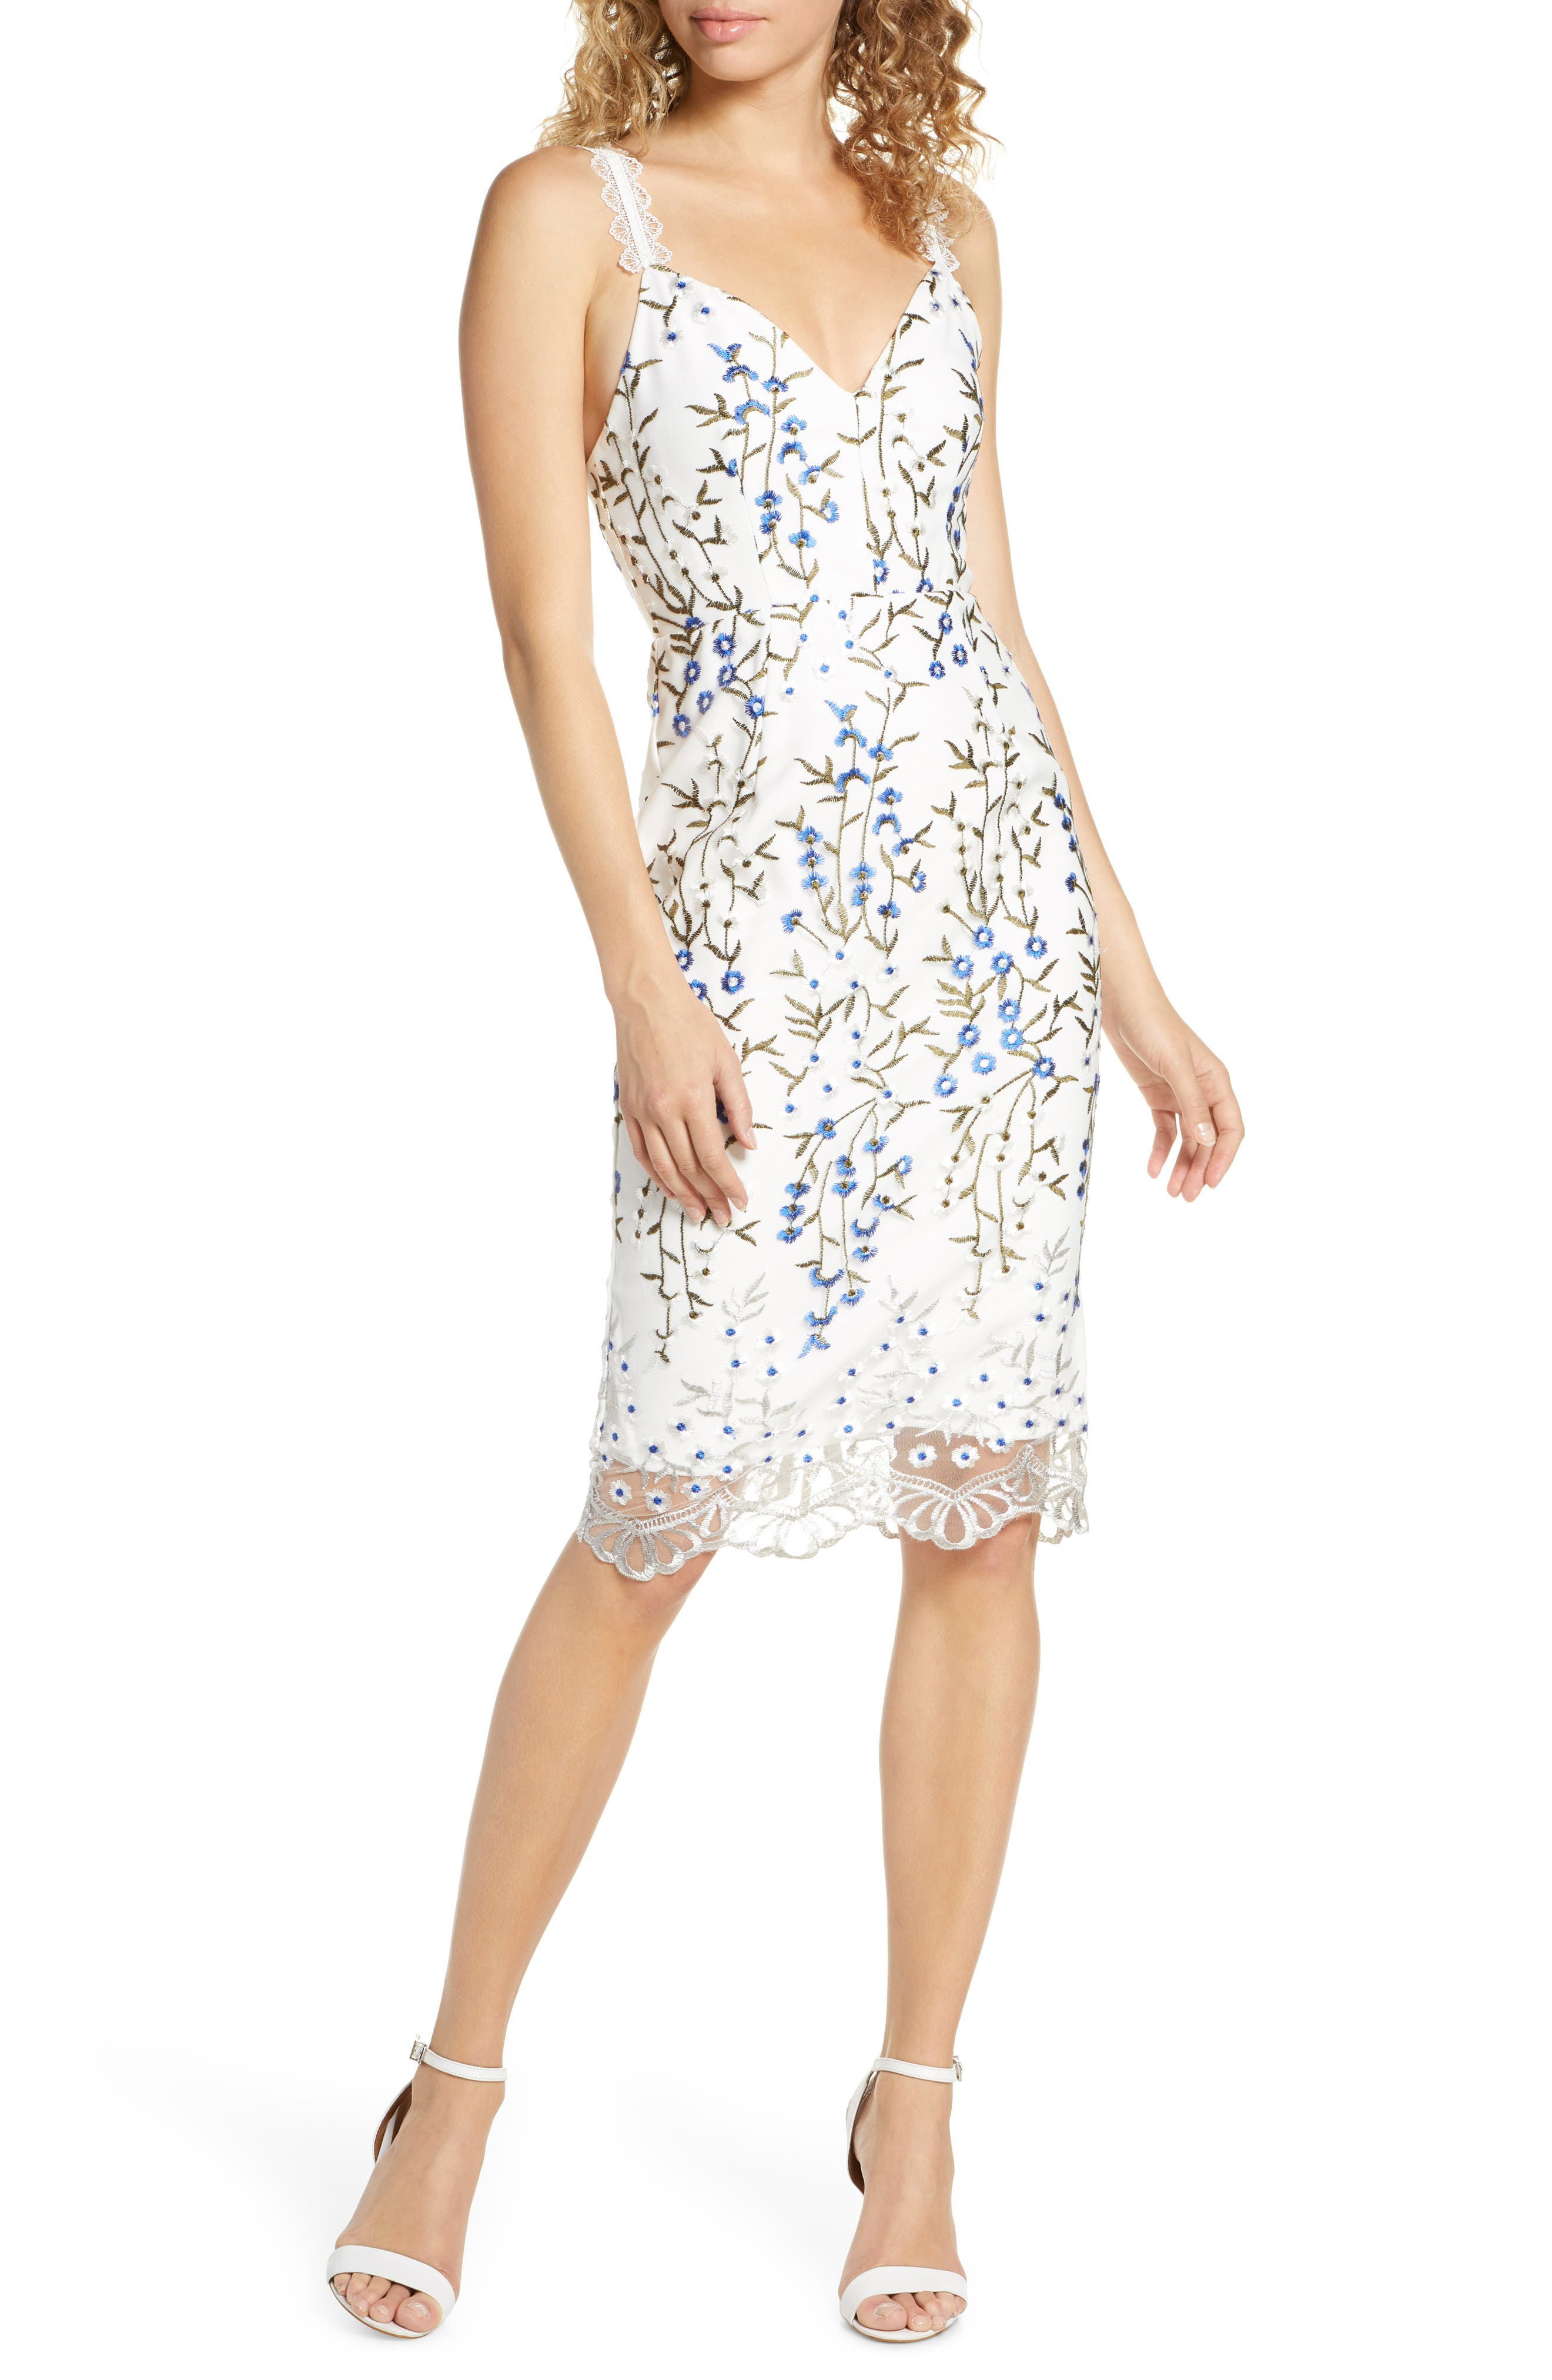 Bronx And Banco Poppy White Embroidered Floral Dress, White